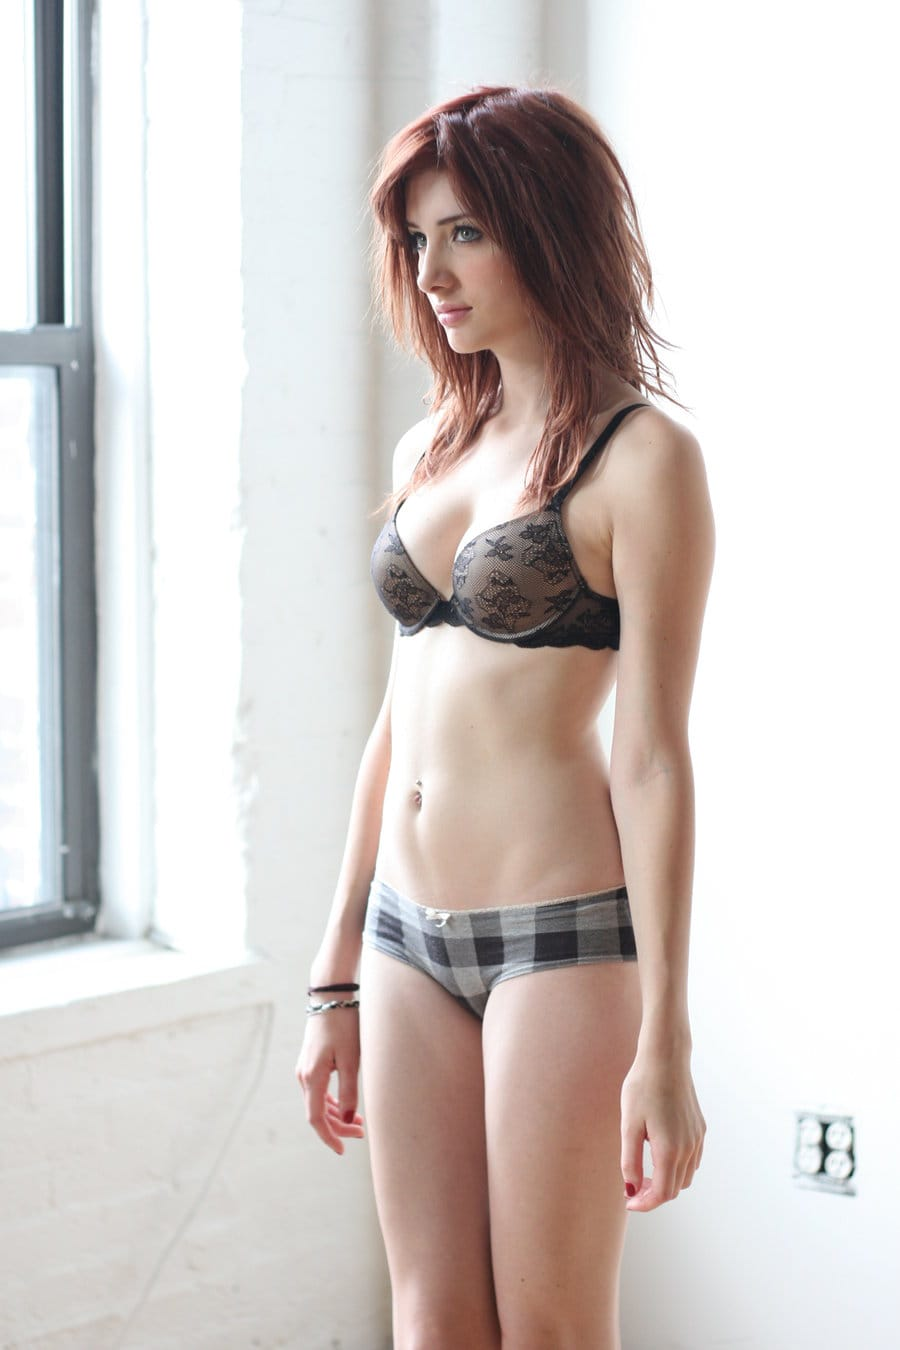 Susan coffey hot